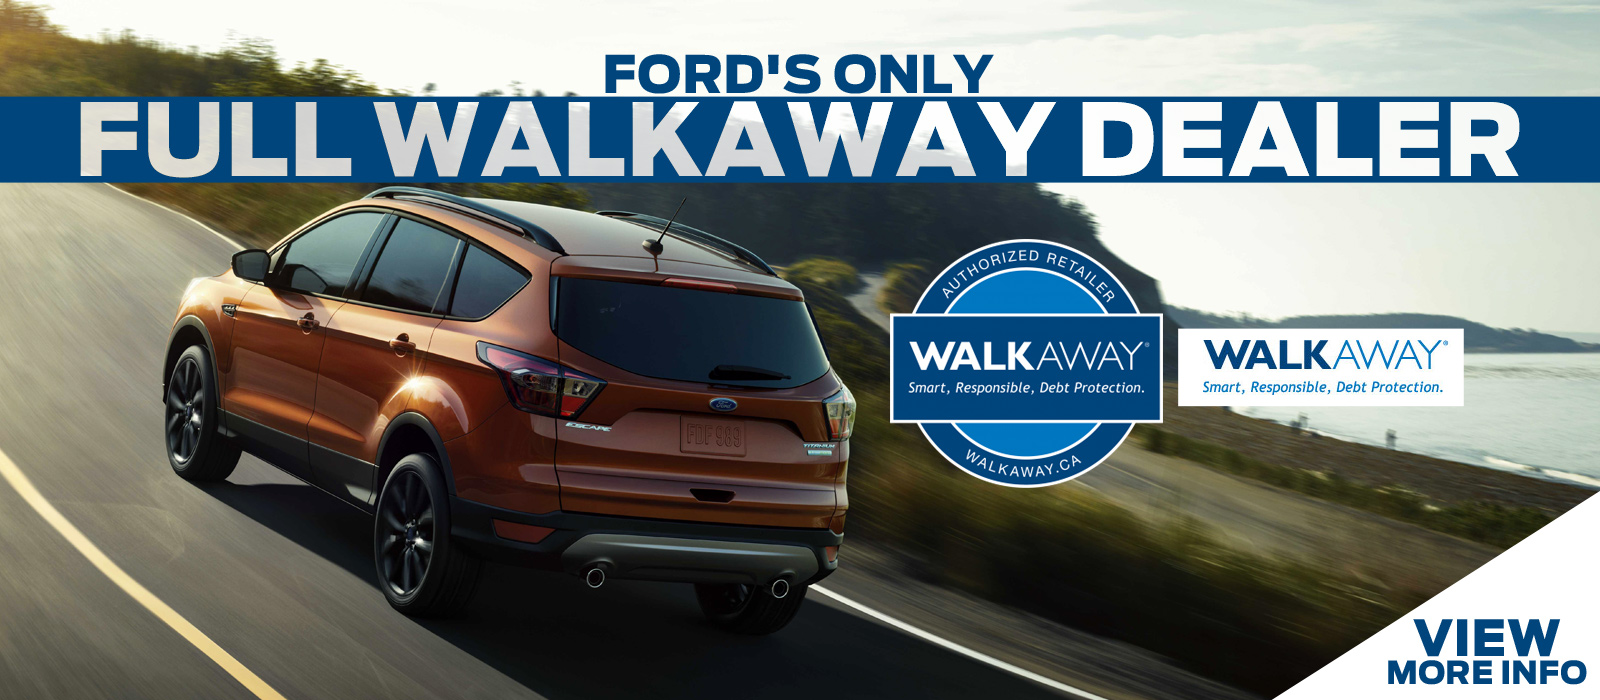 Yorkdale ford where everybody shops and saves ford dealer in toronto ontario